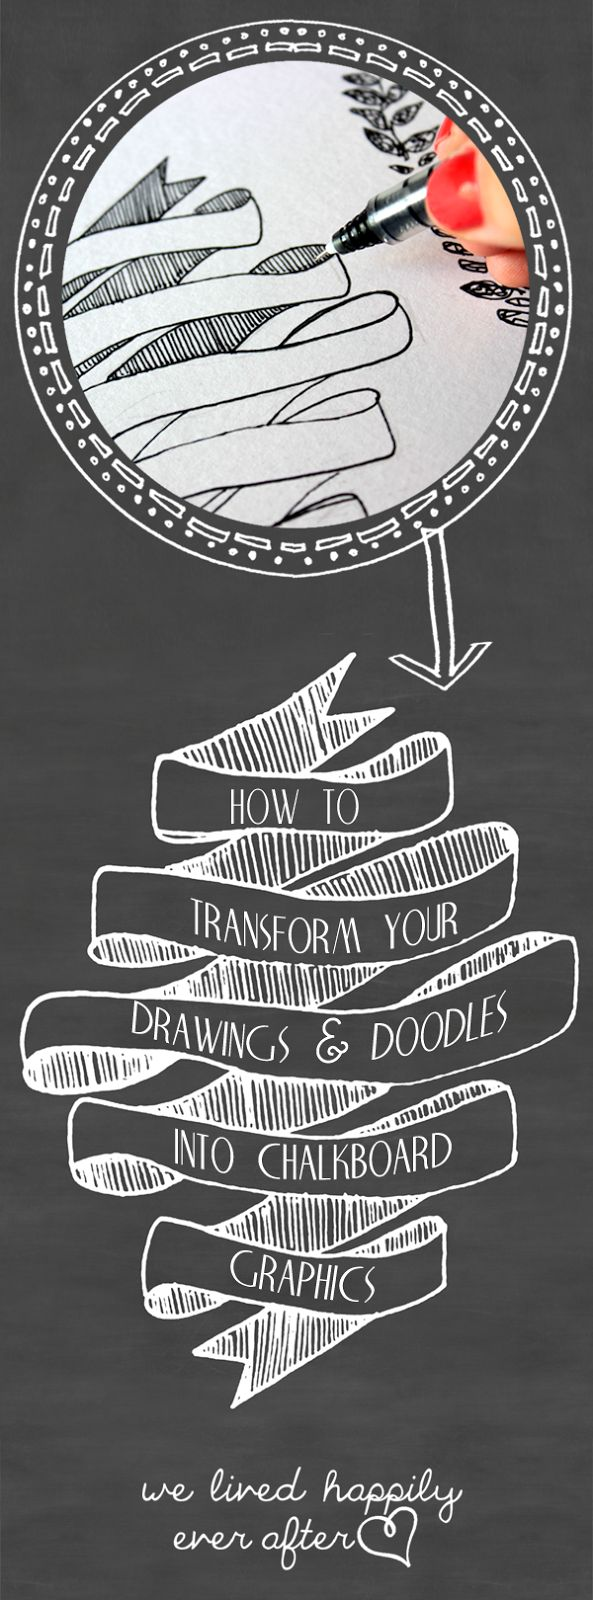 "We Lived Happily Ever After: Transfer your Writing, Drawings & Doodles into Chalkboard Graphics & Printables Using Photoshop! OK I SERIOUSLY NEED to start learning how to use ""Photoshop"""